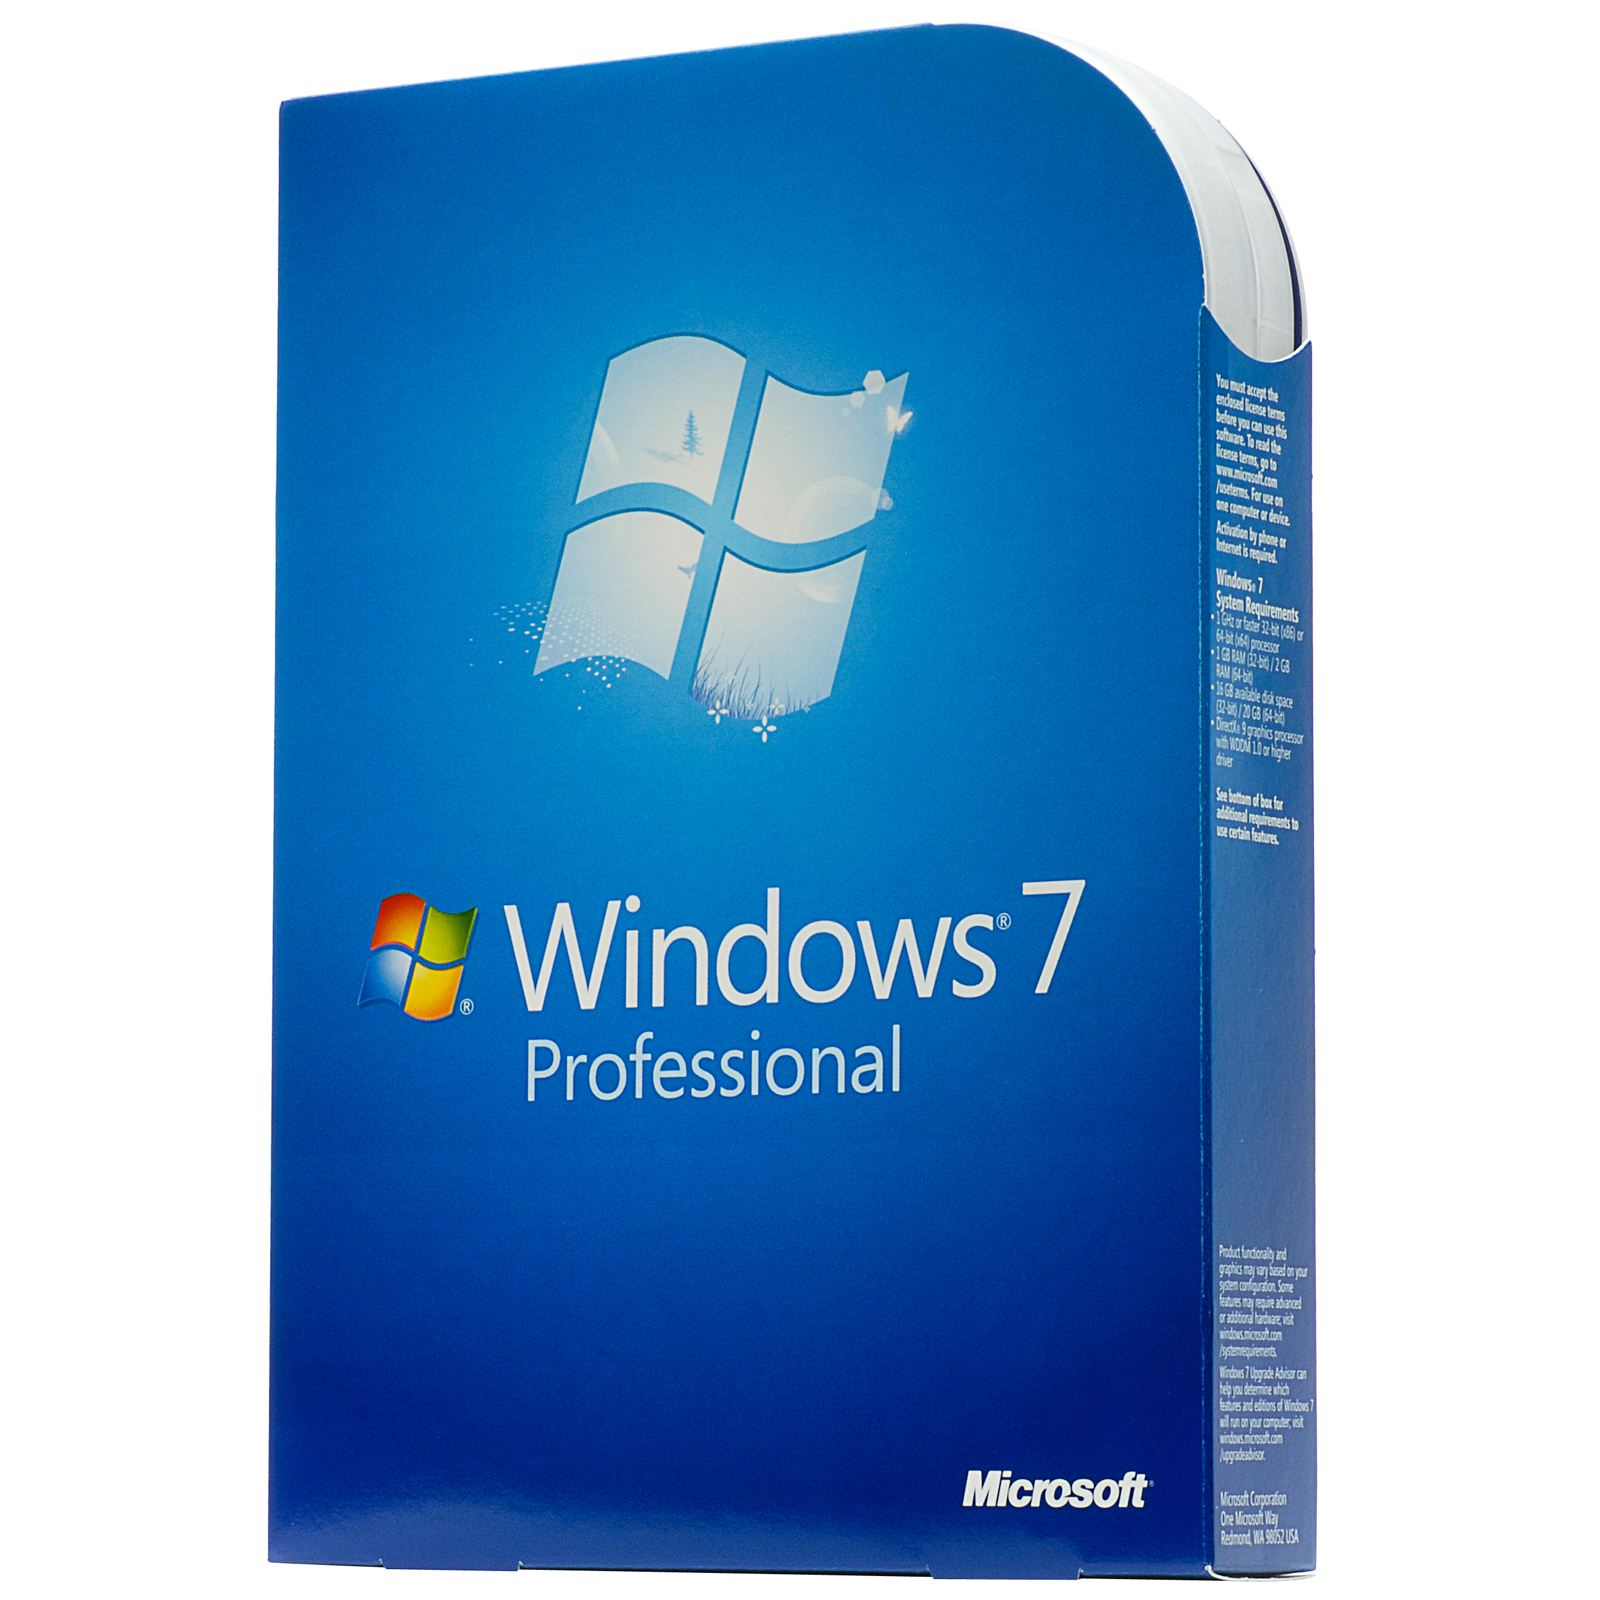 Windows 7 professional download free for Window 7 professional